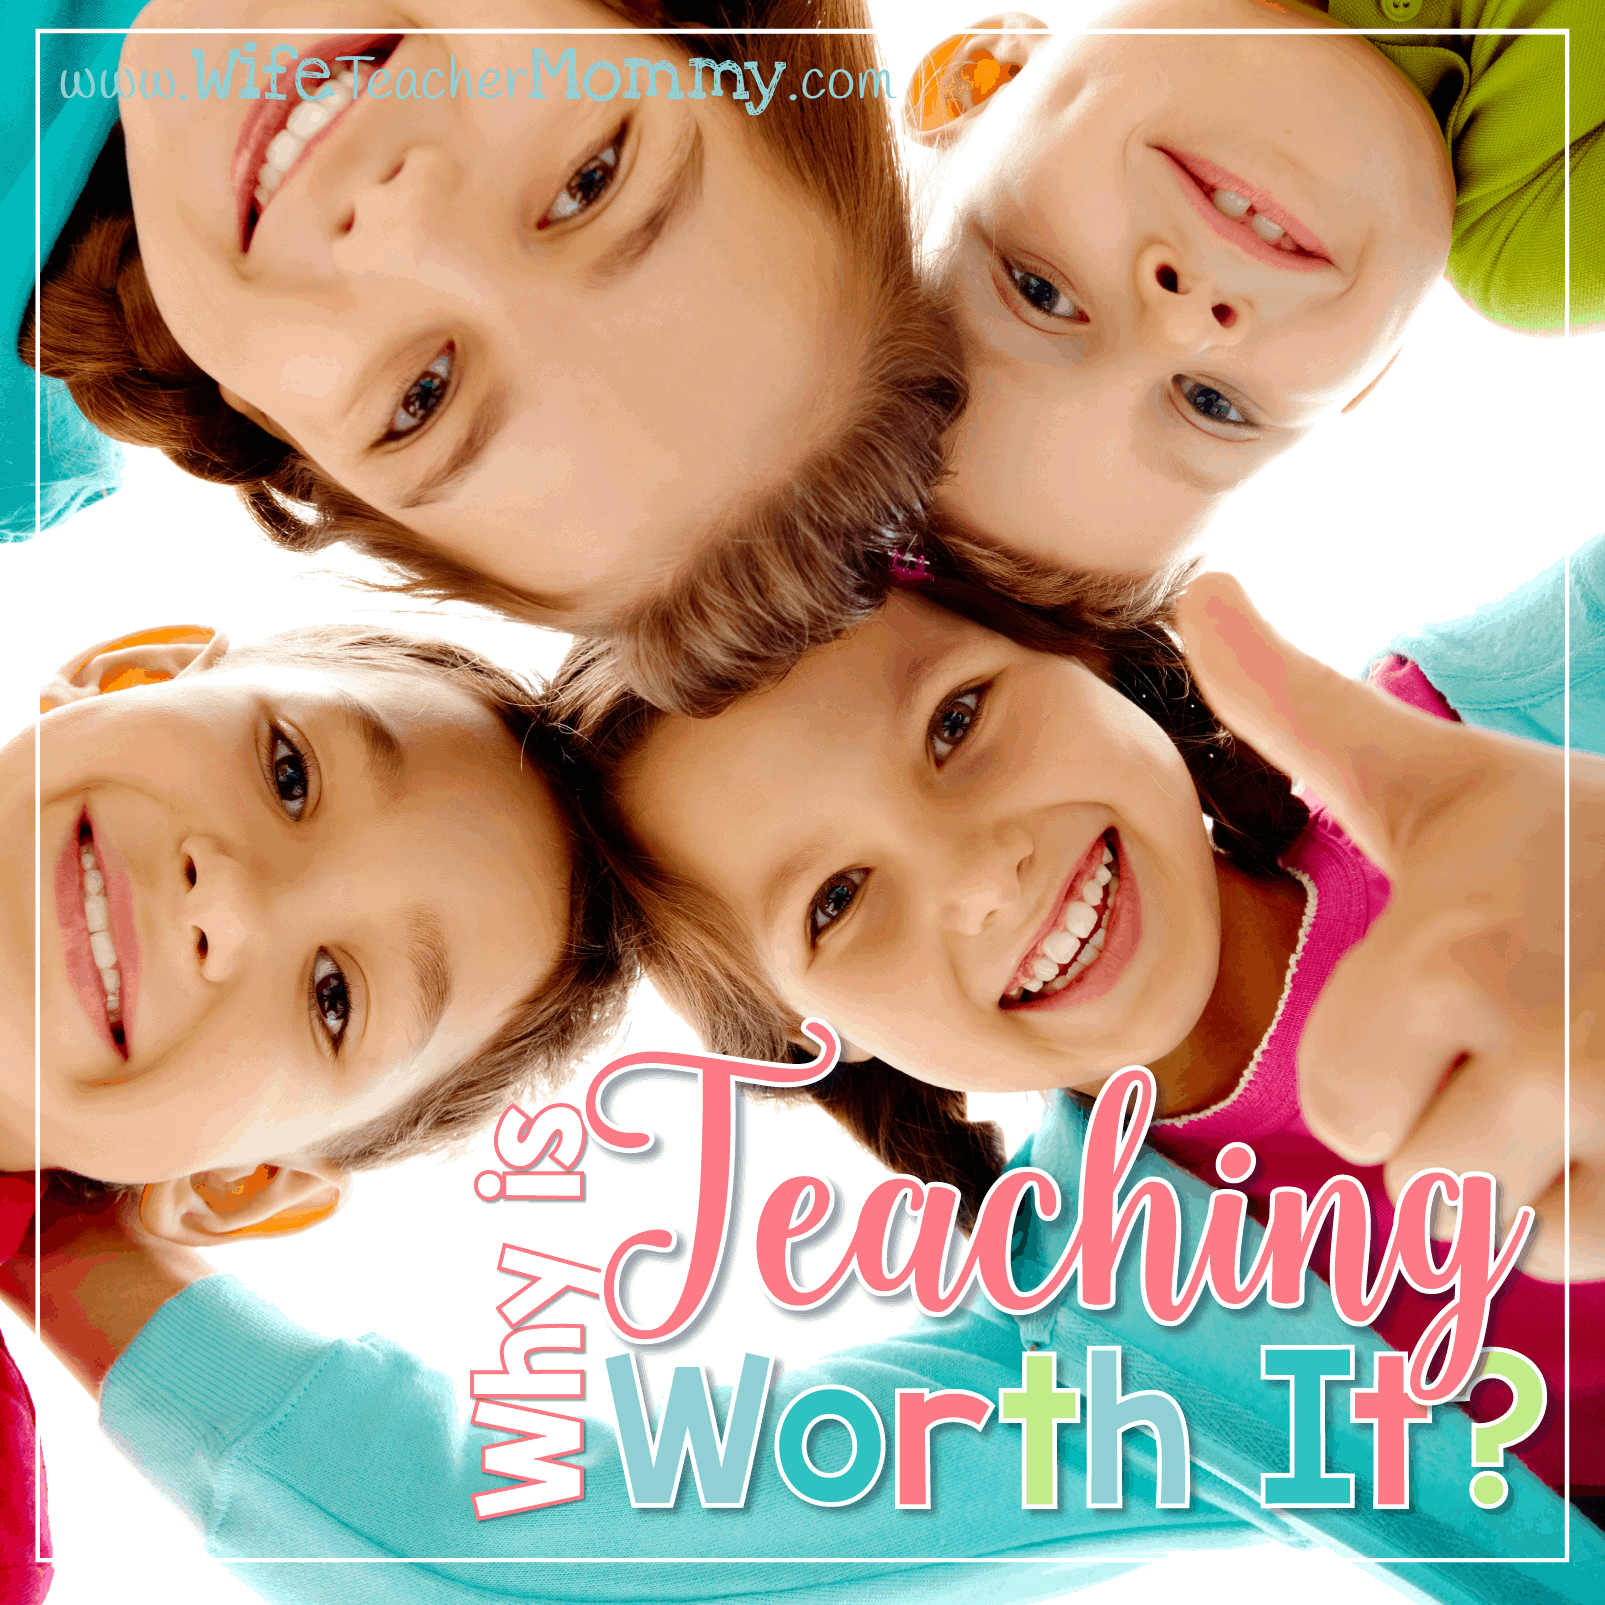 Why is teaching worth it? Our readers weighed in!